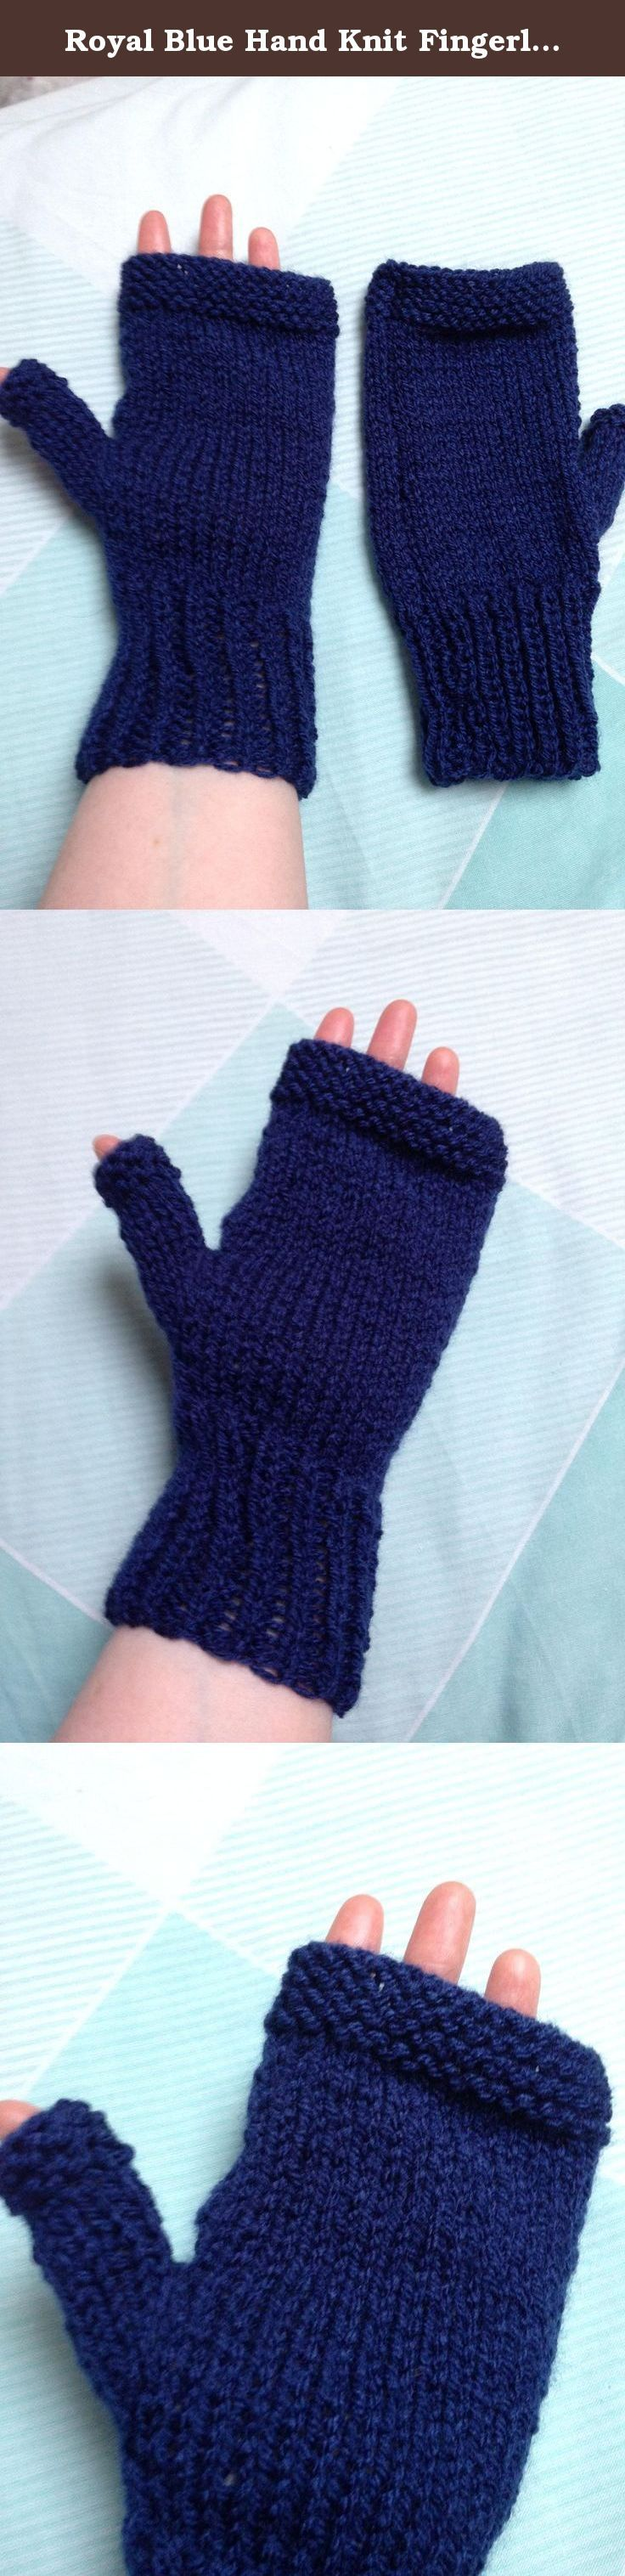 Royal Blue Hand Knit Fingerless Gloves. These beautiful hand knit royal blue gloves are perfect for keeping your hands and wrists warm when out and about during this chilly weather. They are fingerless and so perfect for working and texting while keeping your hands toasty. They would also make a beautiful gift. I hand knit these gloves using double knit yarn in a gorgeous shade of royal blue. There is a little thumb gusset on each hand to provide a little extra heat. Each glove measures...